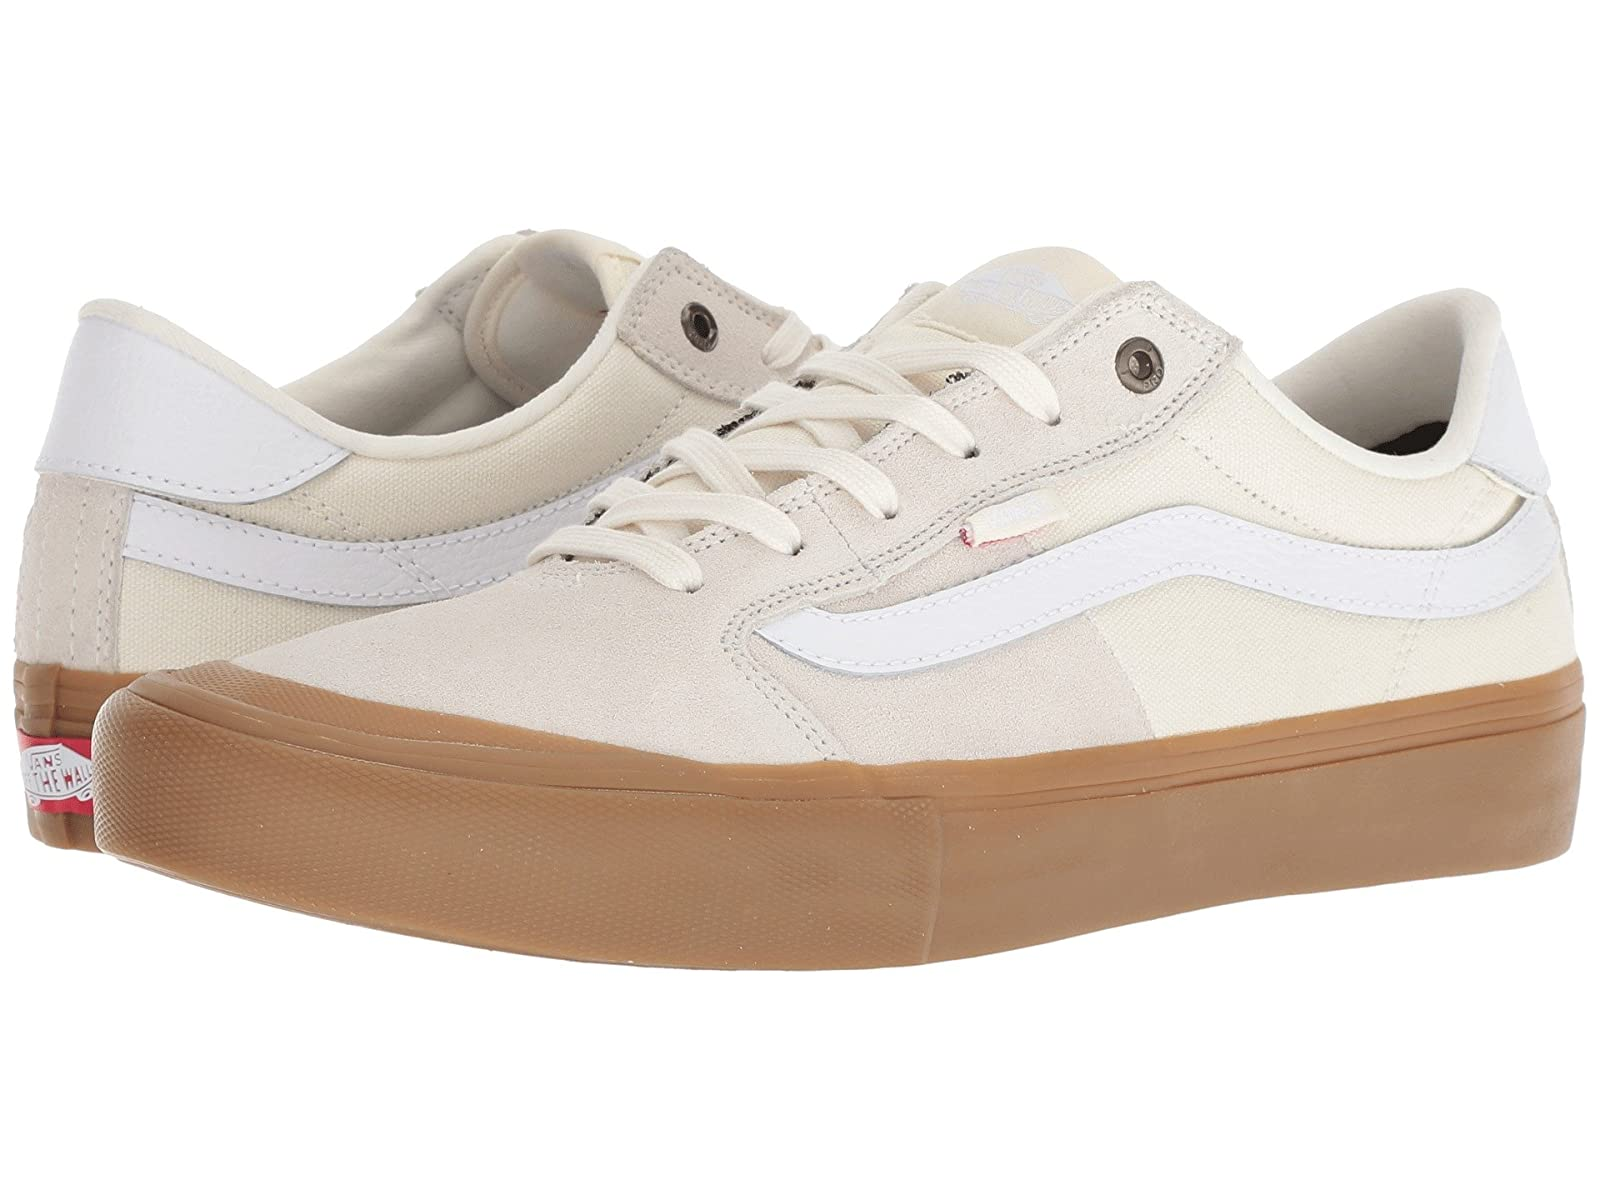 Vans Style 112 ProAtmospheric grades have affordable shoes